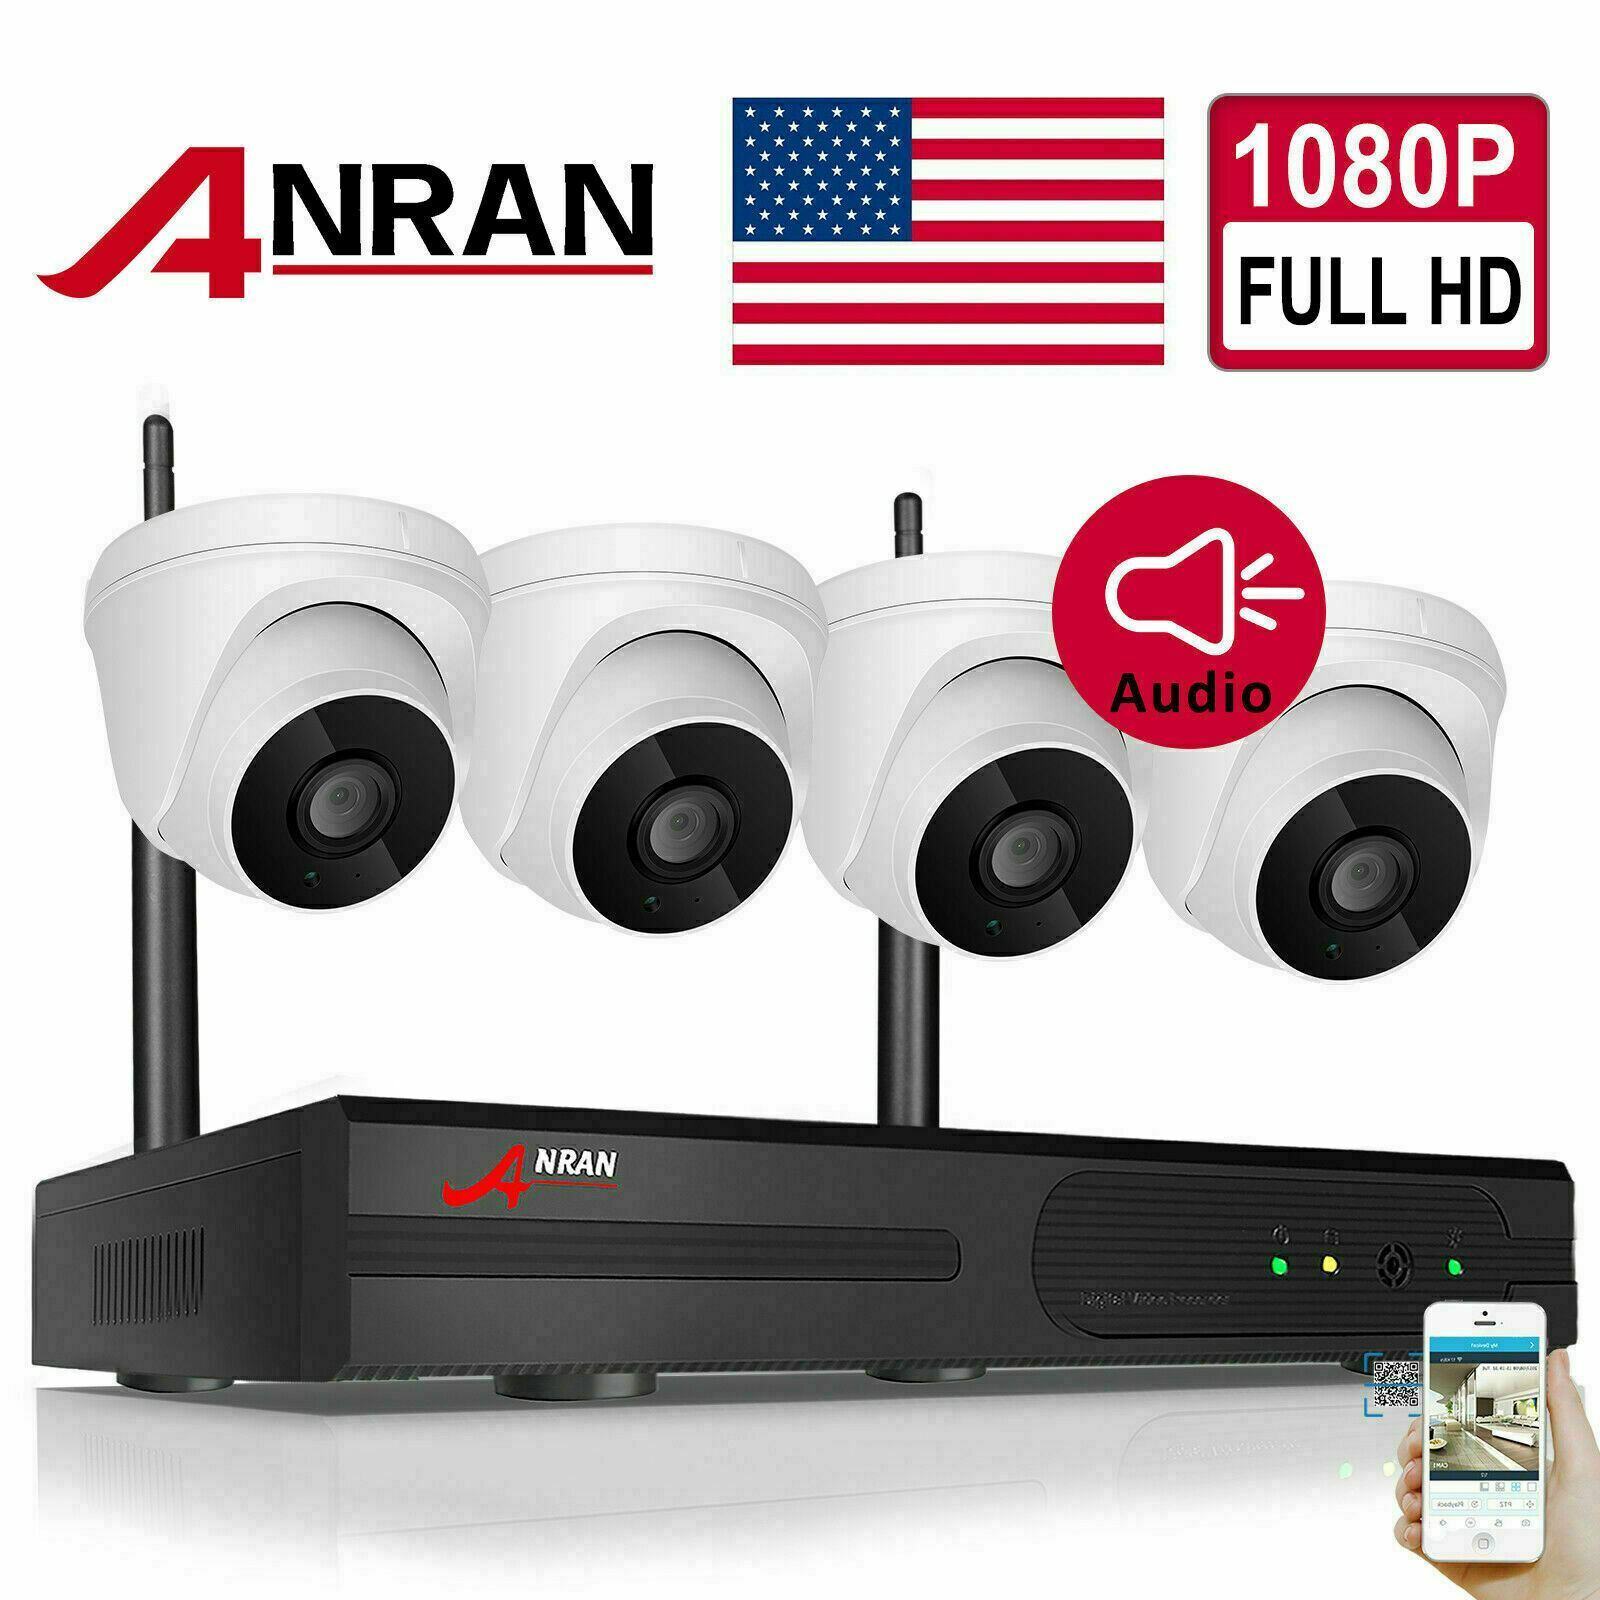 1080P HD Wifi Security Camera System Wireless Outdoor IP CCTV 8CH NVR Kit APP US. Available Now for 149.99